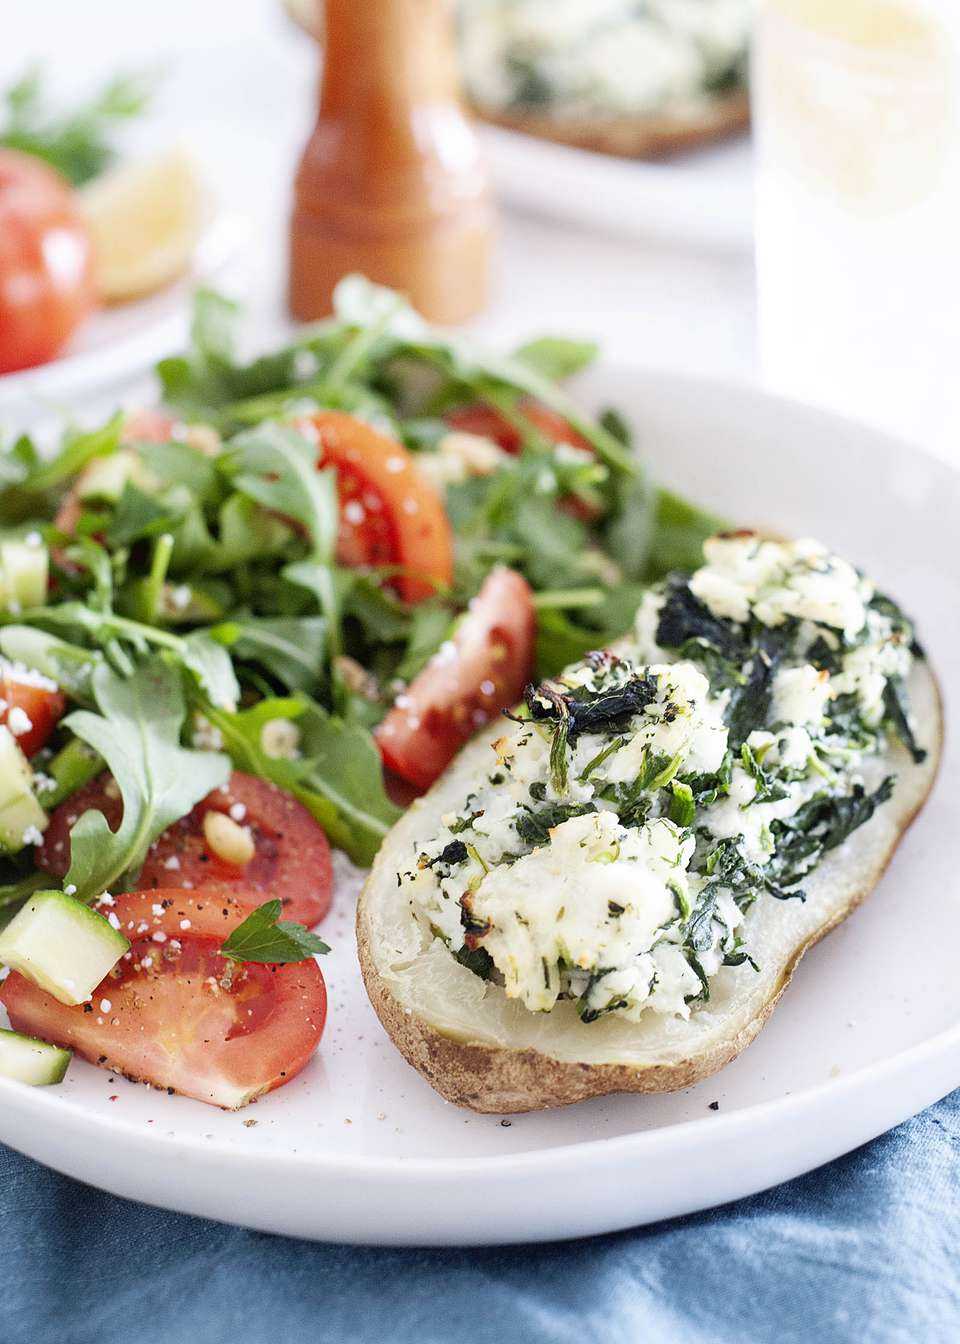 Twice baked potato filled with spinach and feta on a white plate with a tomato and arugula salad.